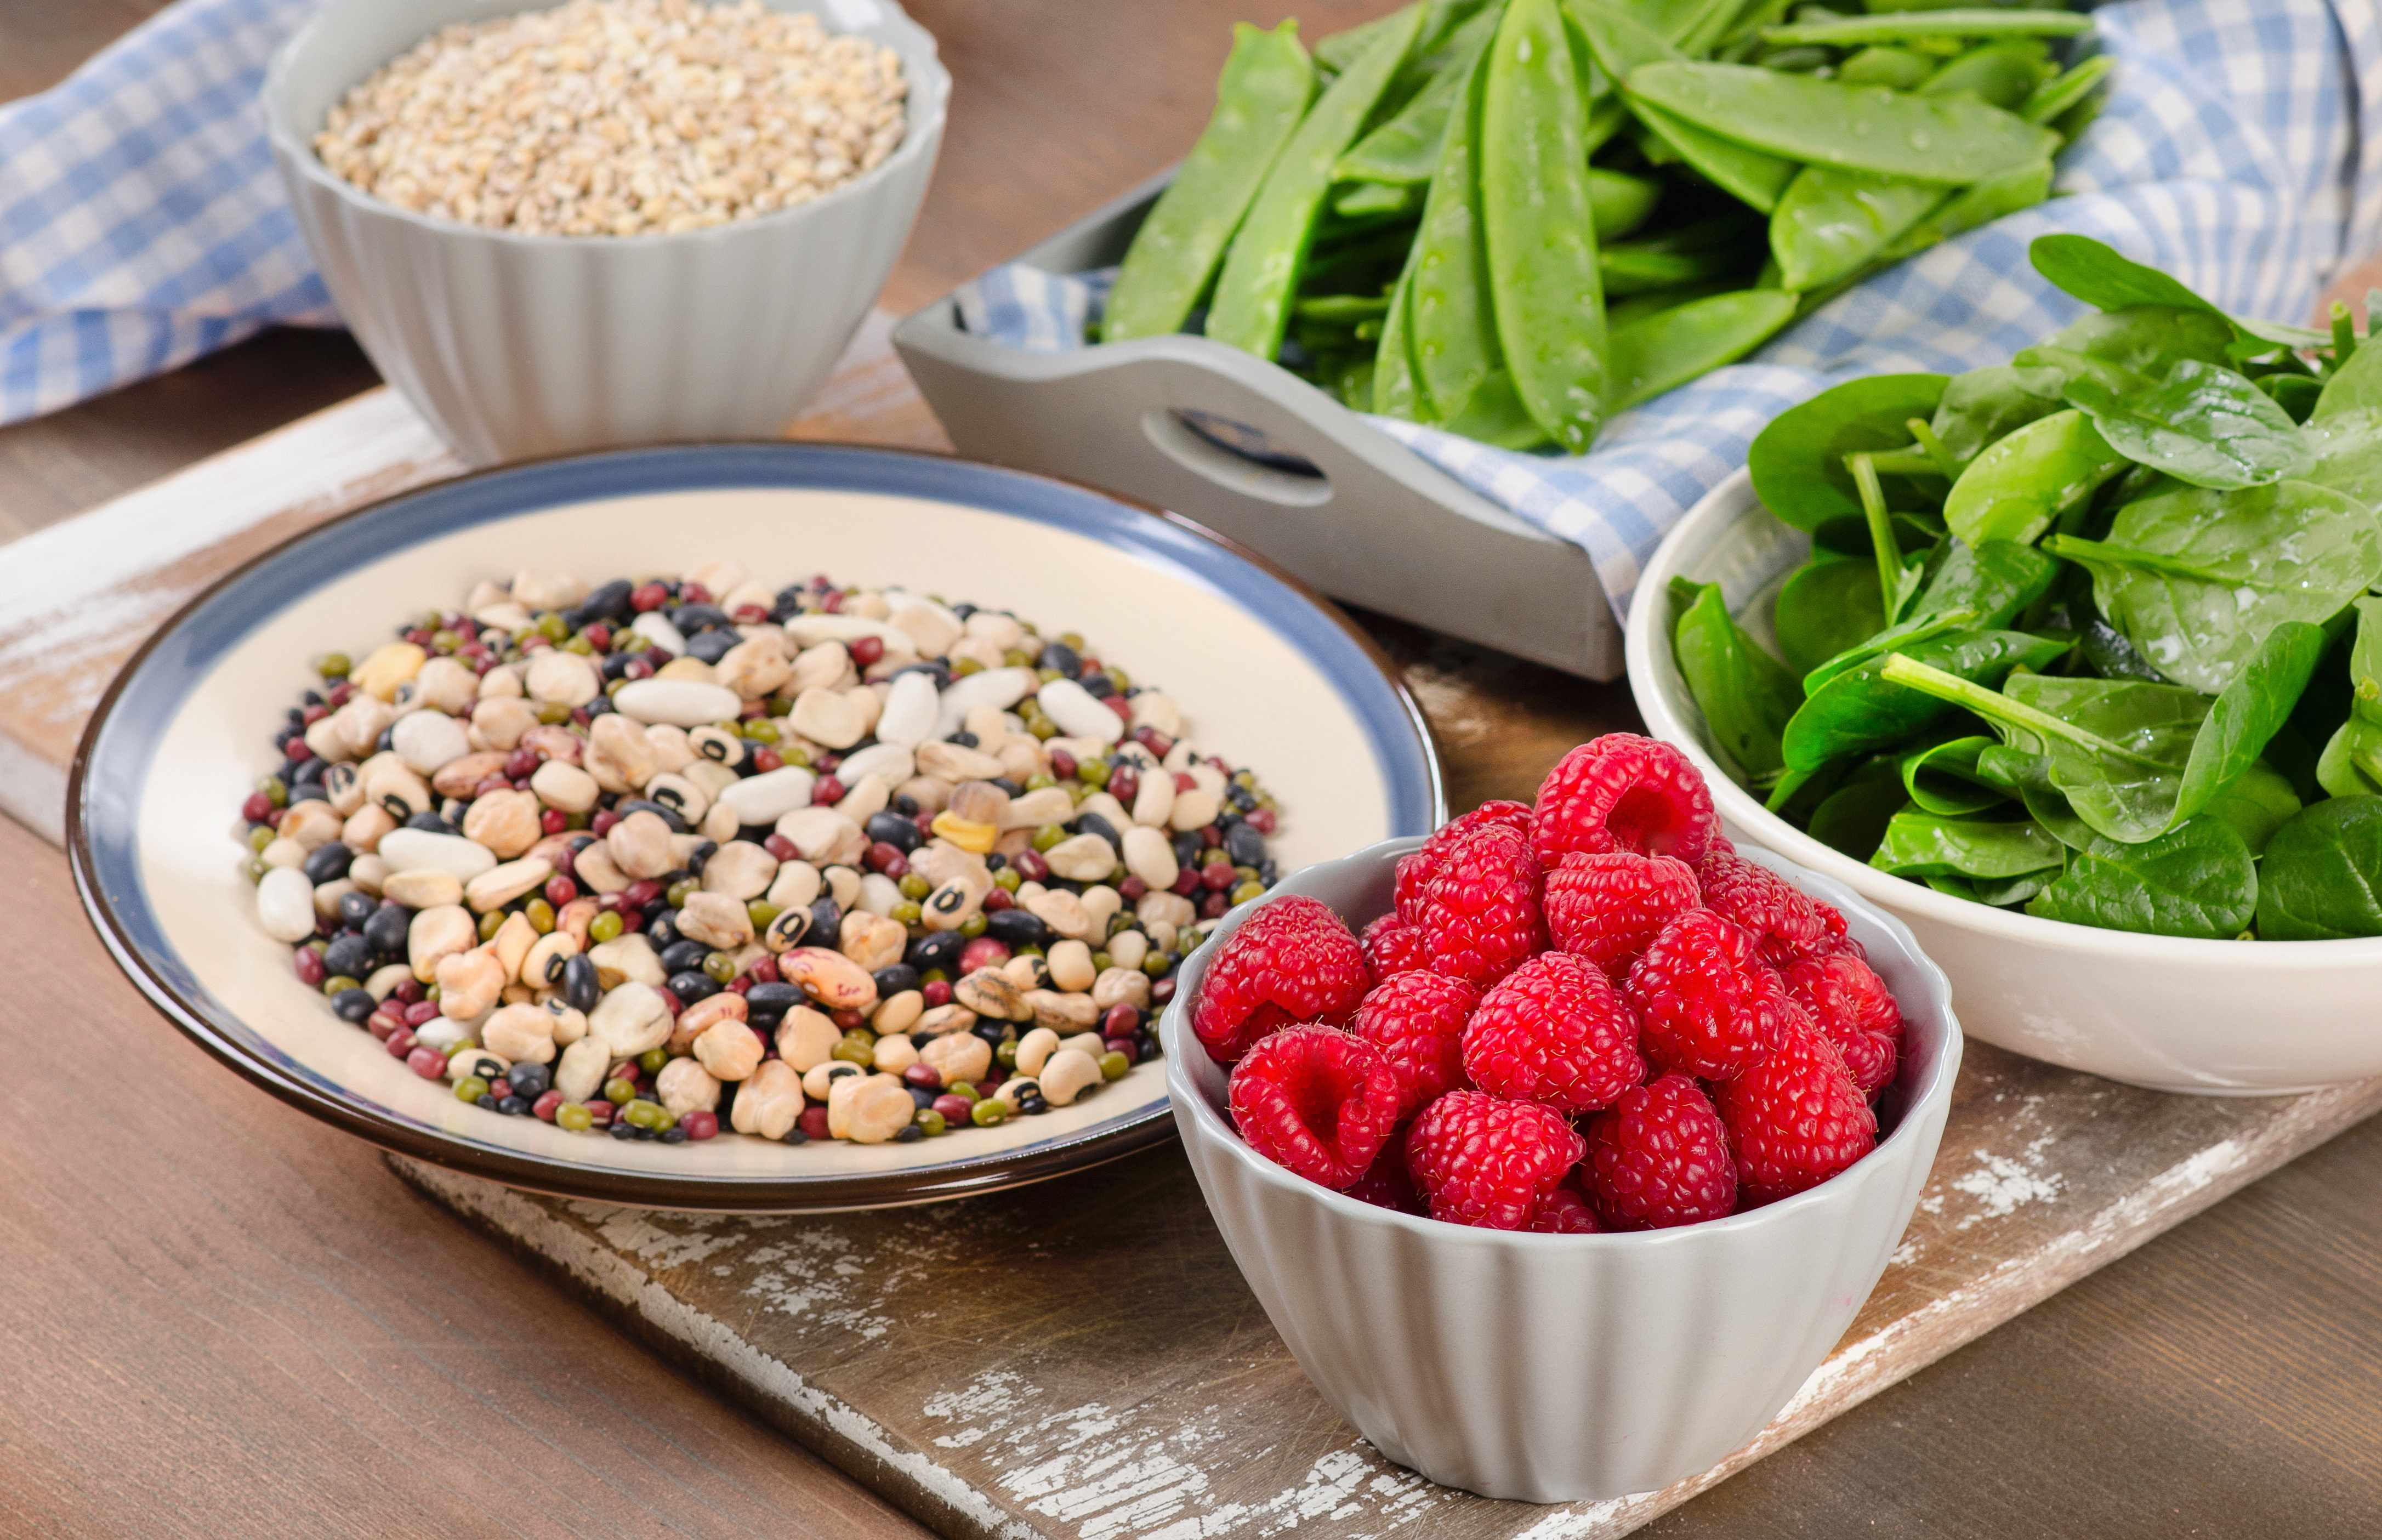 high fiber foods, spnach leaves, nuts and berries on a wood background